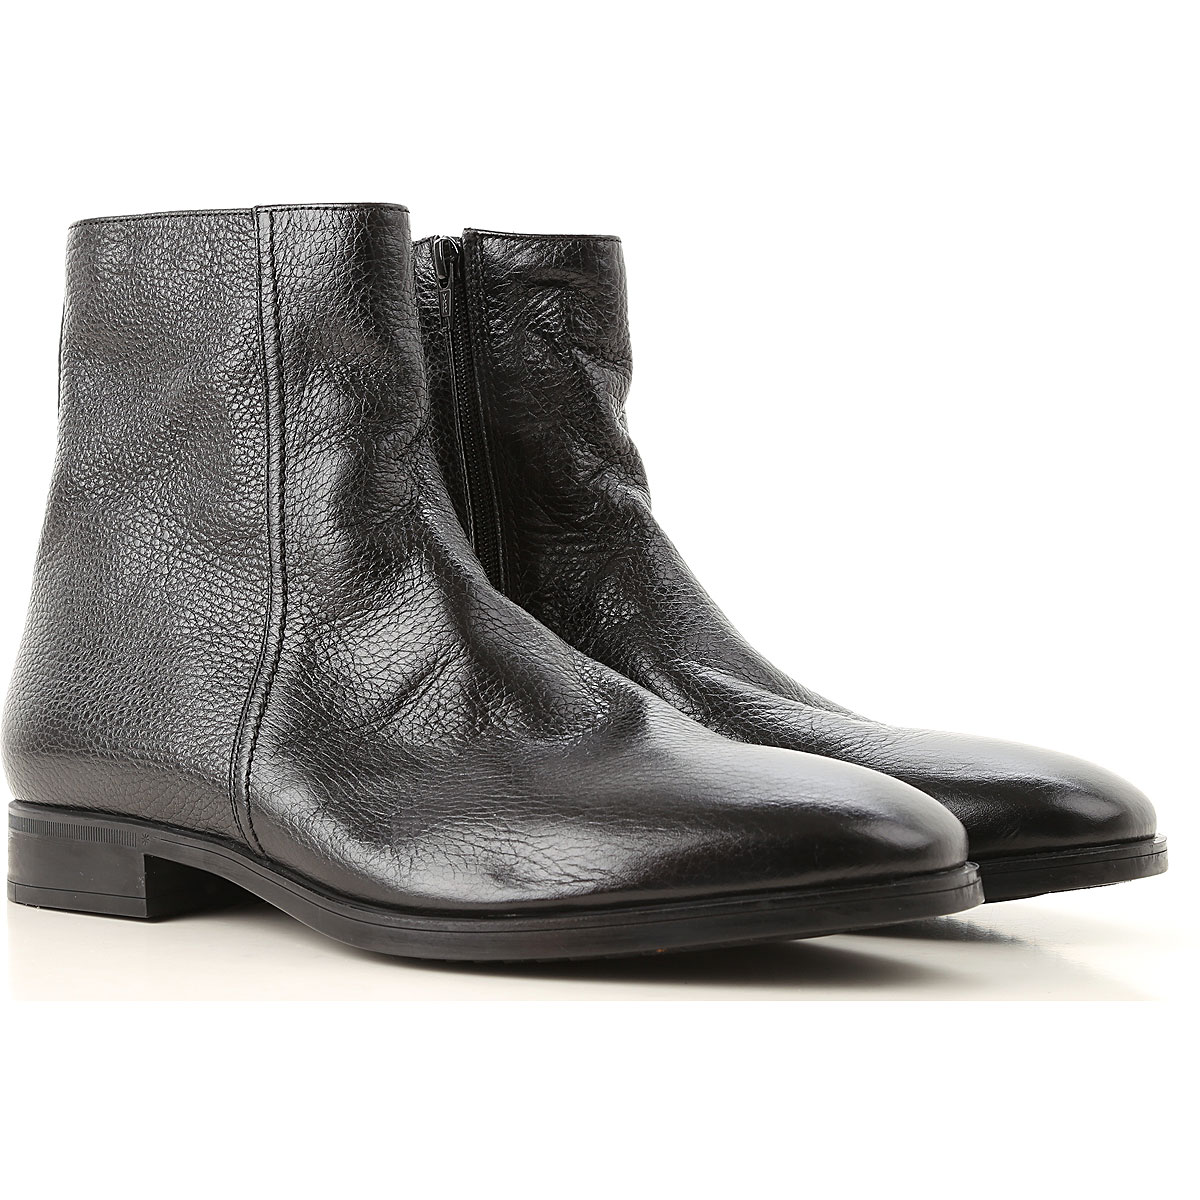 Image of Moreschi Boots for Men, Booties, Black, Leather, 2017, 10 10.5 11 11.5 12 7 7.5 8 8.5 9 9.5